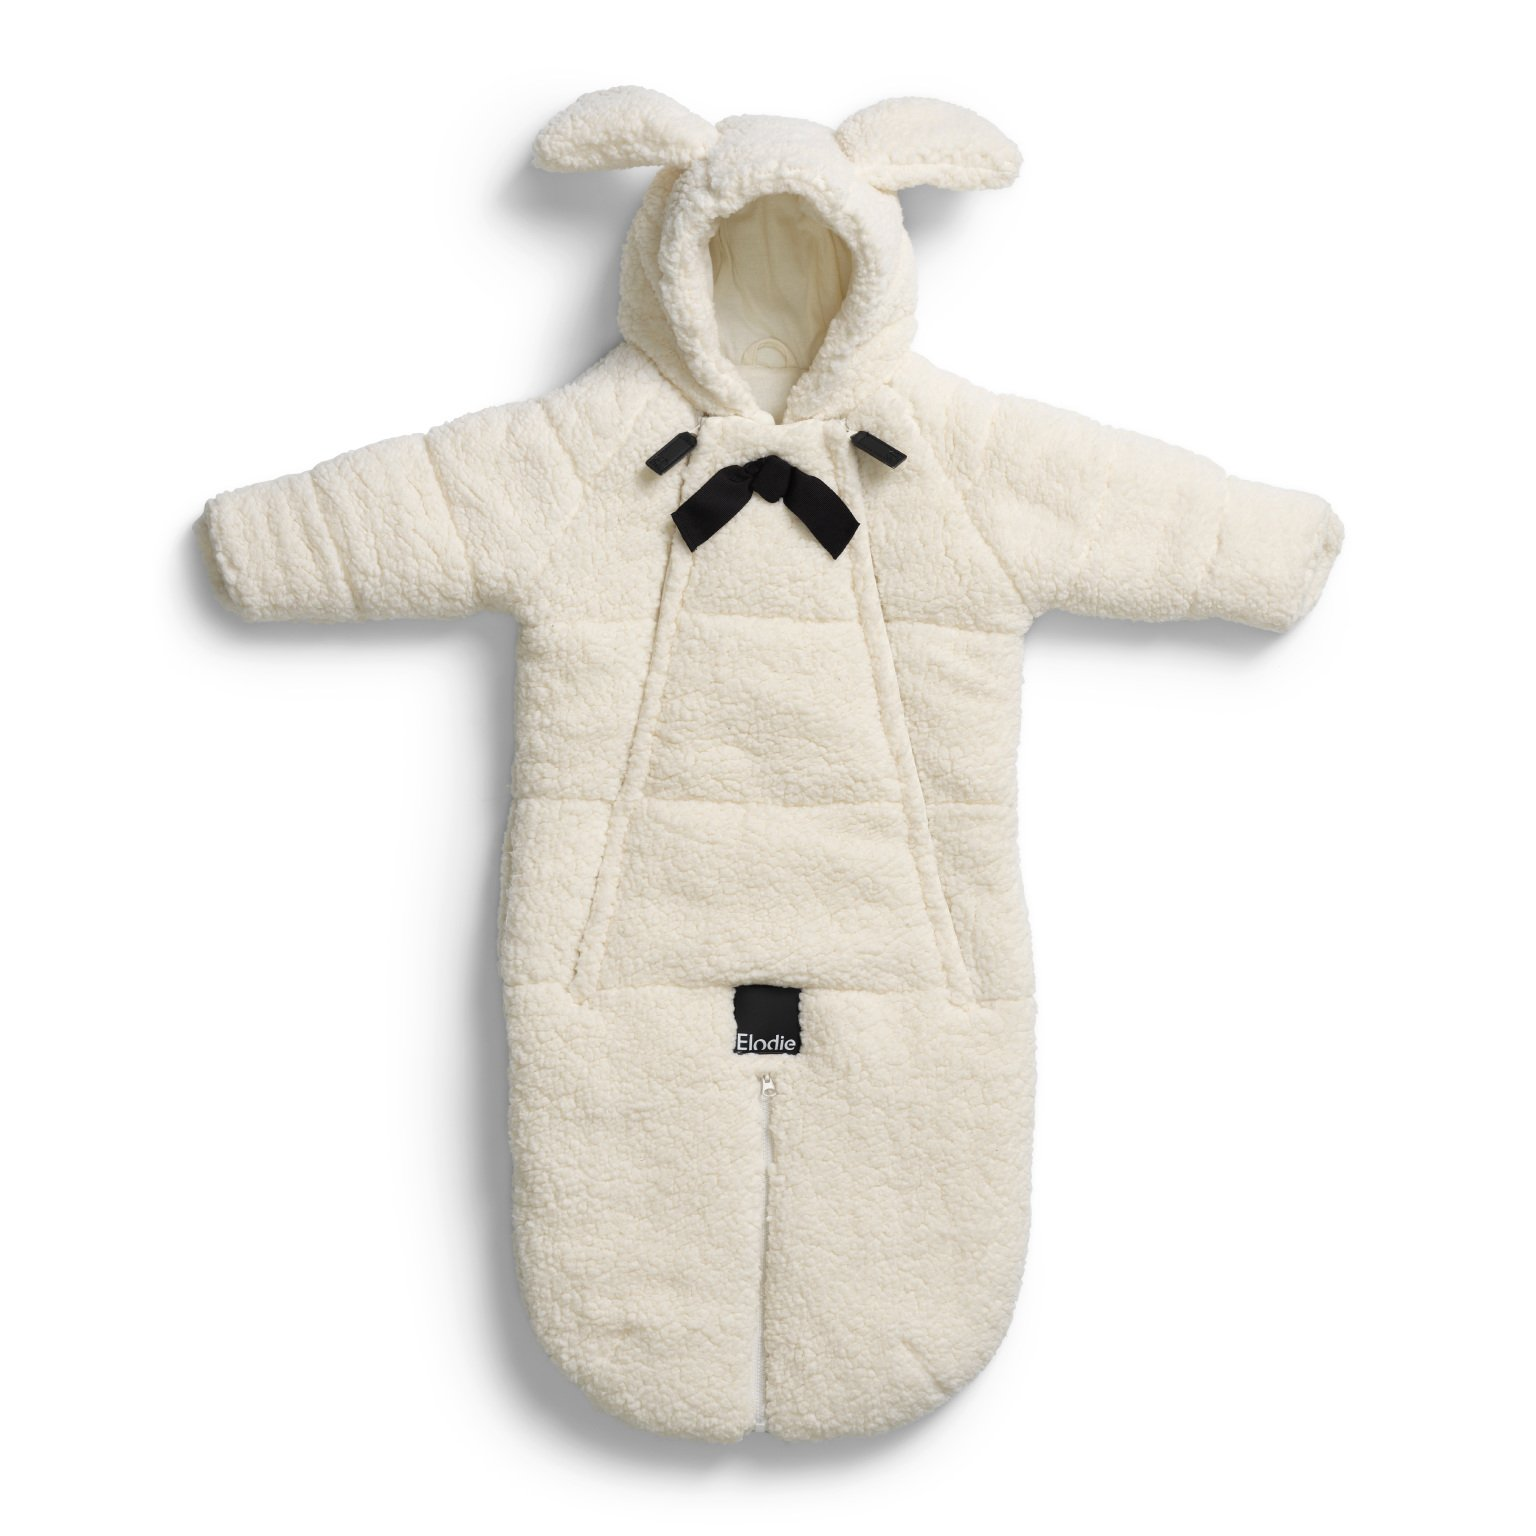 Elodie Details - Baby Overall Footmuff - Shearling 6-12m